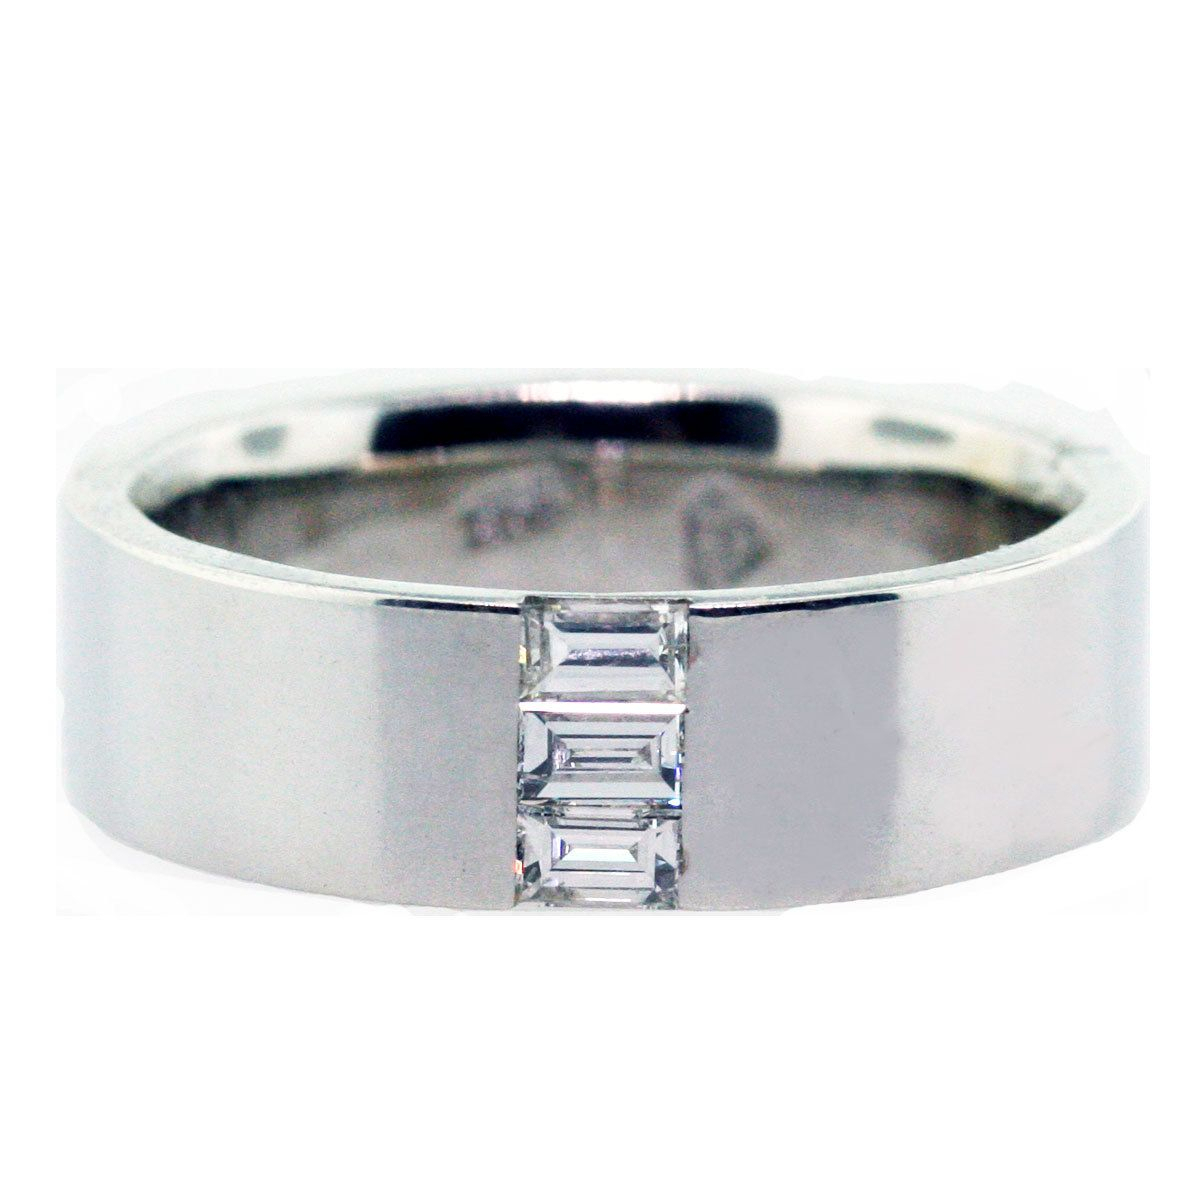 Pin On Masculine Mondays – Men's Fashion Regarding Most Current Diamond Accent Channel Anniversary Bands In White Gold (View 19 of 25)